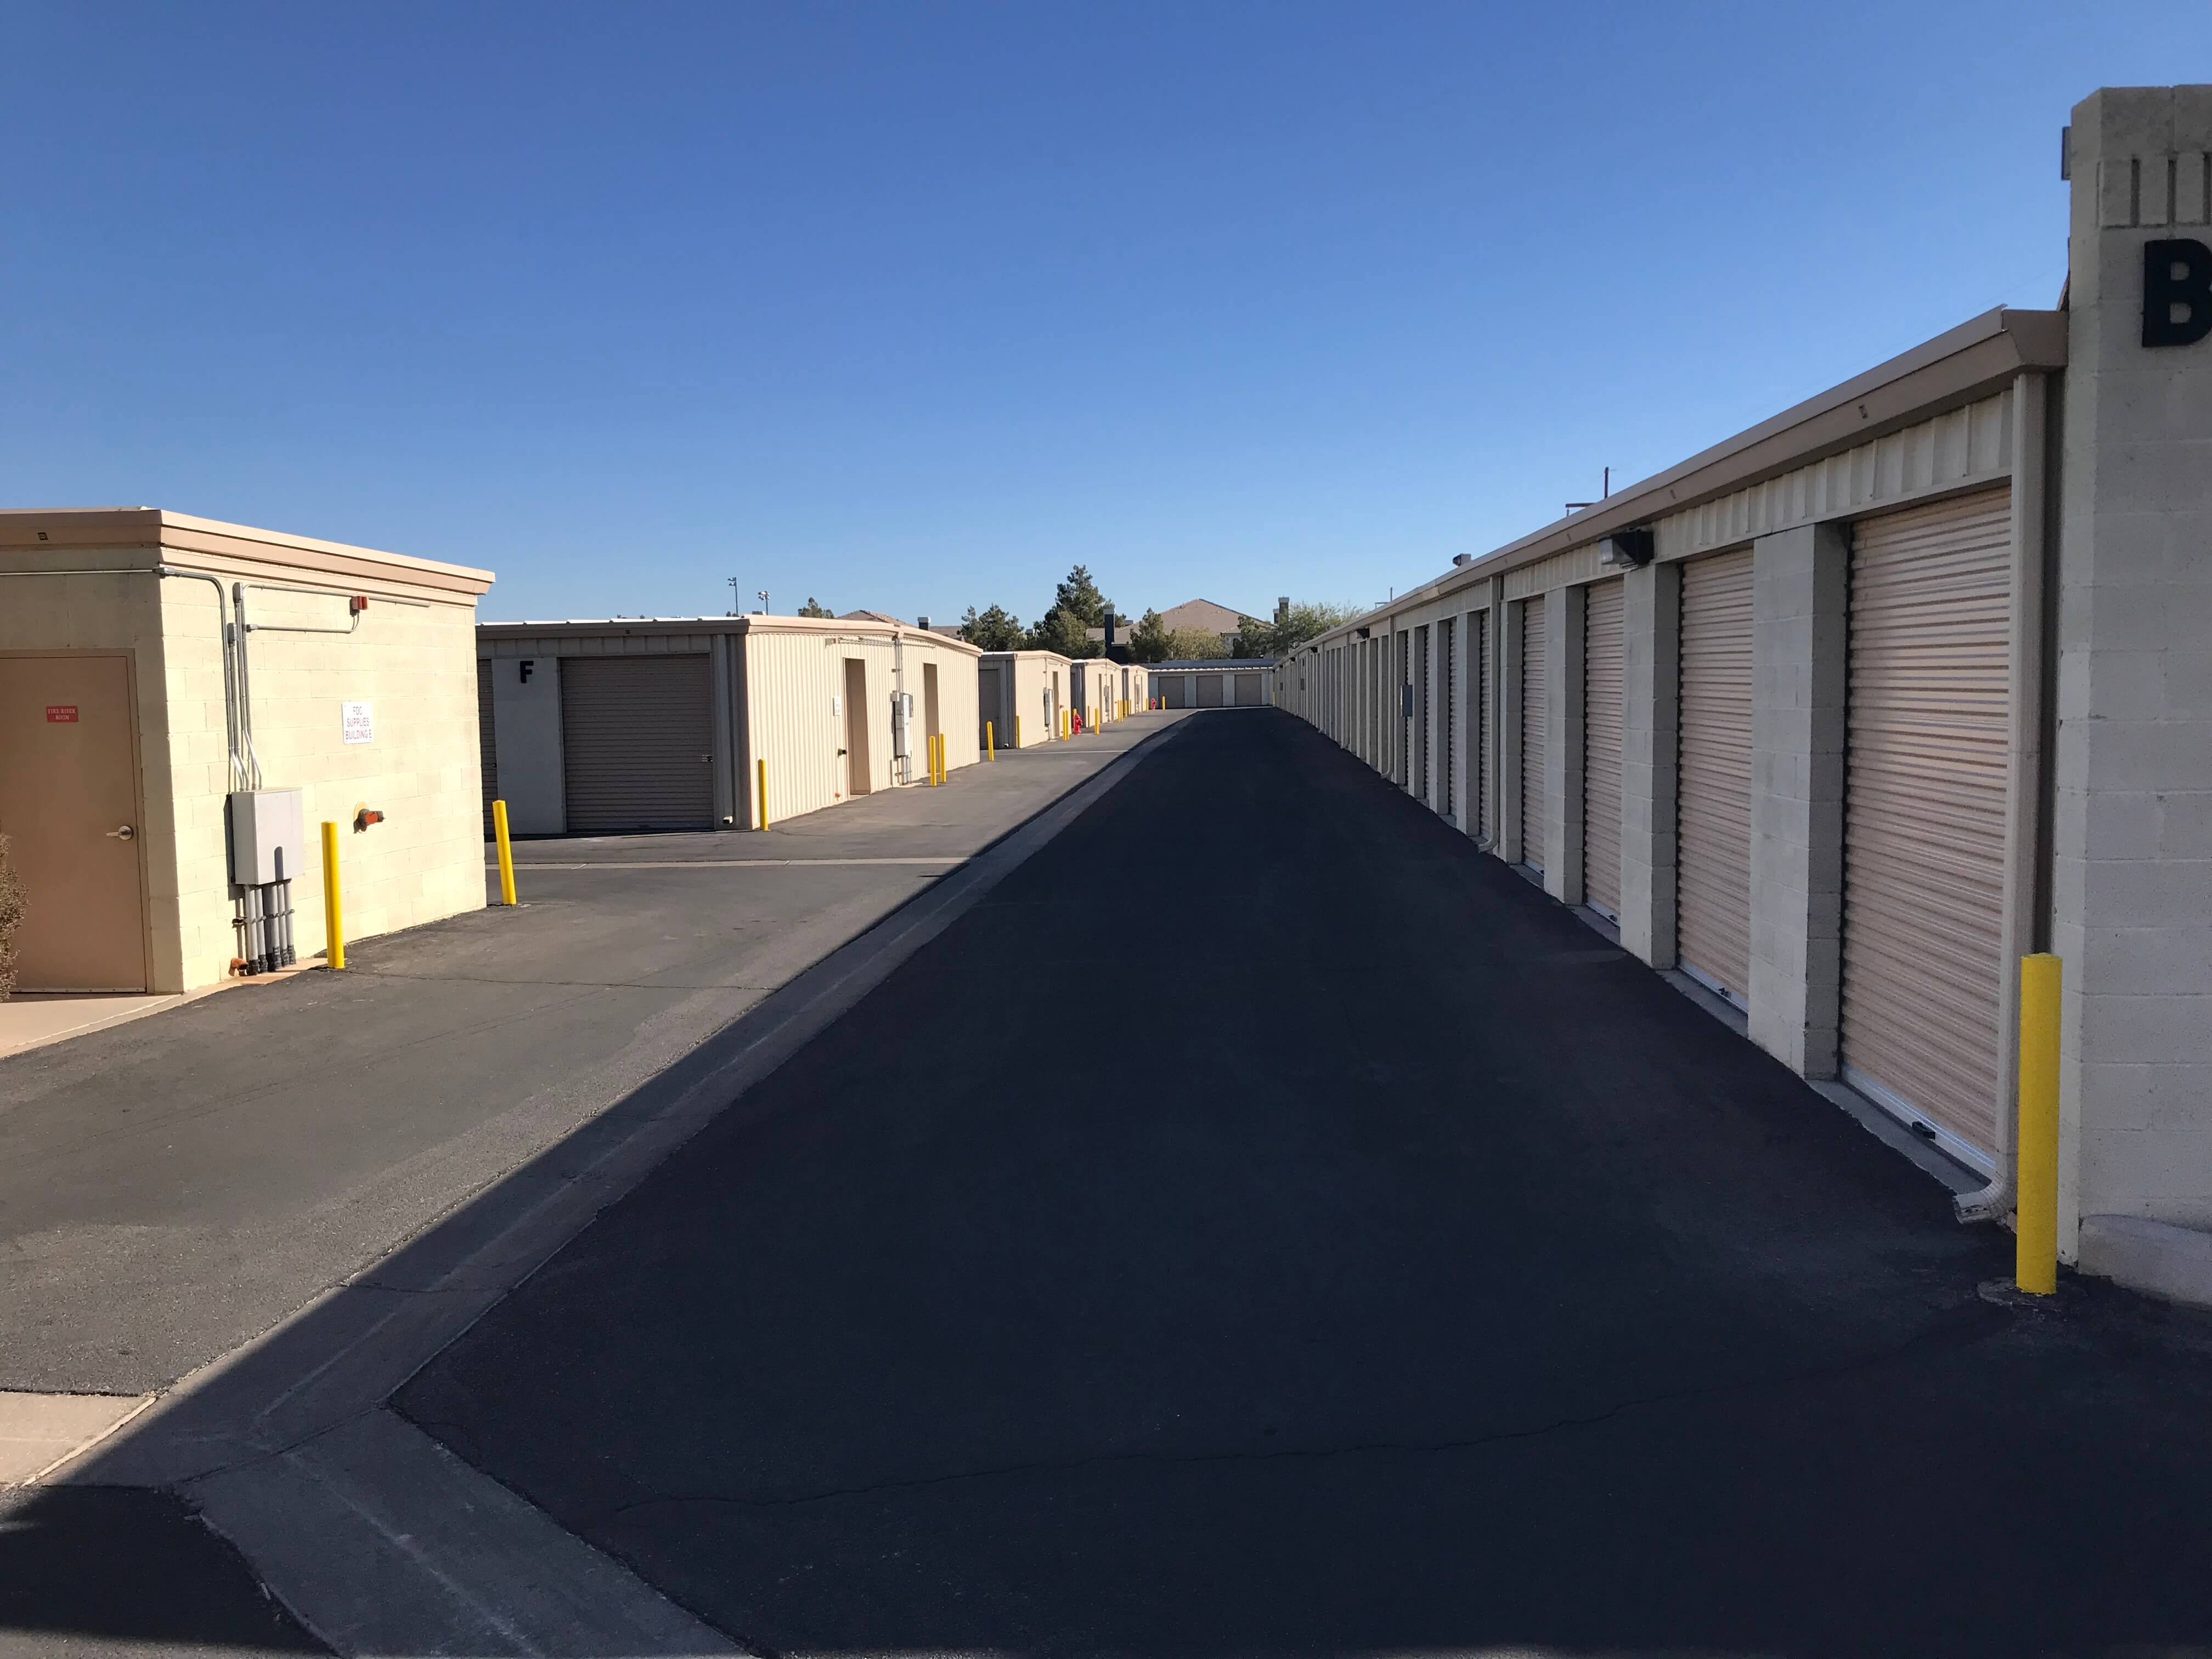 Outside row of storage units at Smart Stop self storage facility located at 9890 Pollock Drive, Las Vegas Nevada